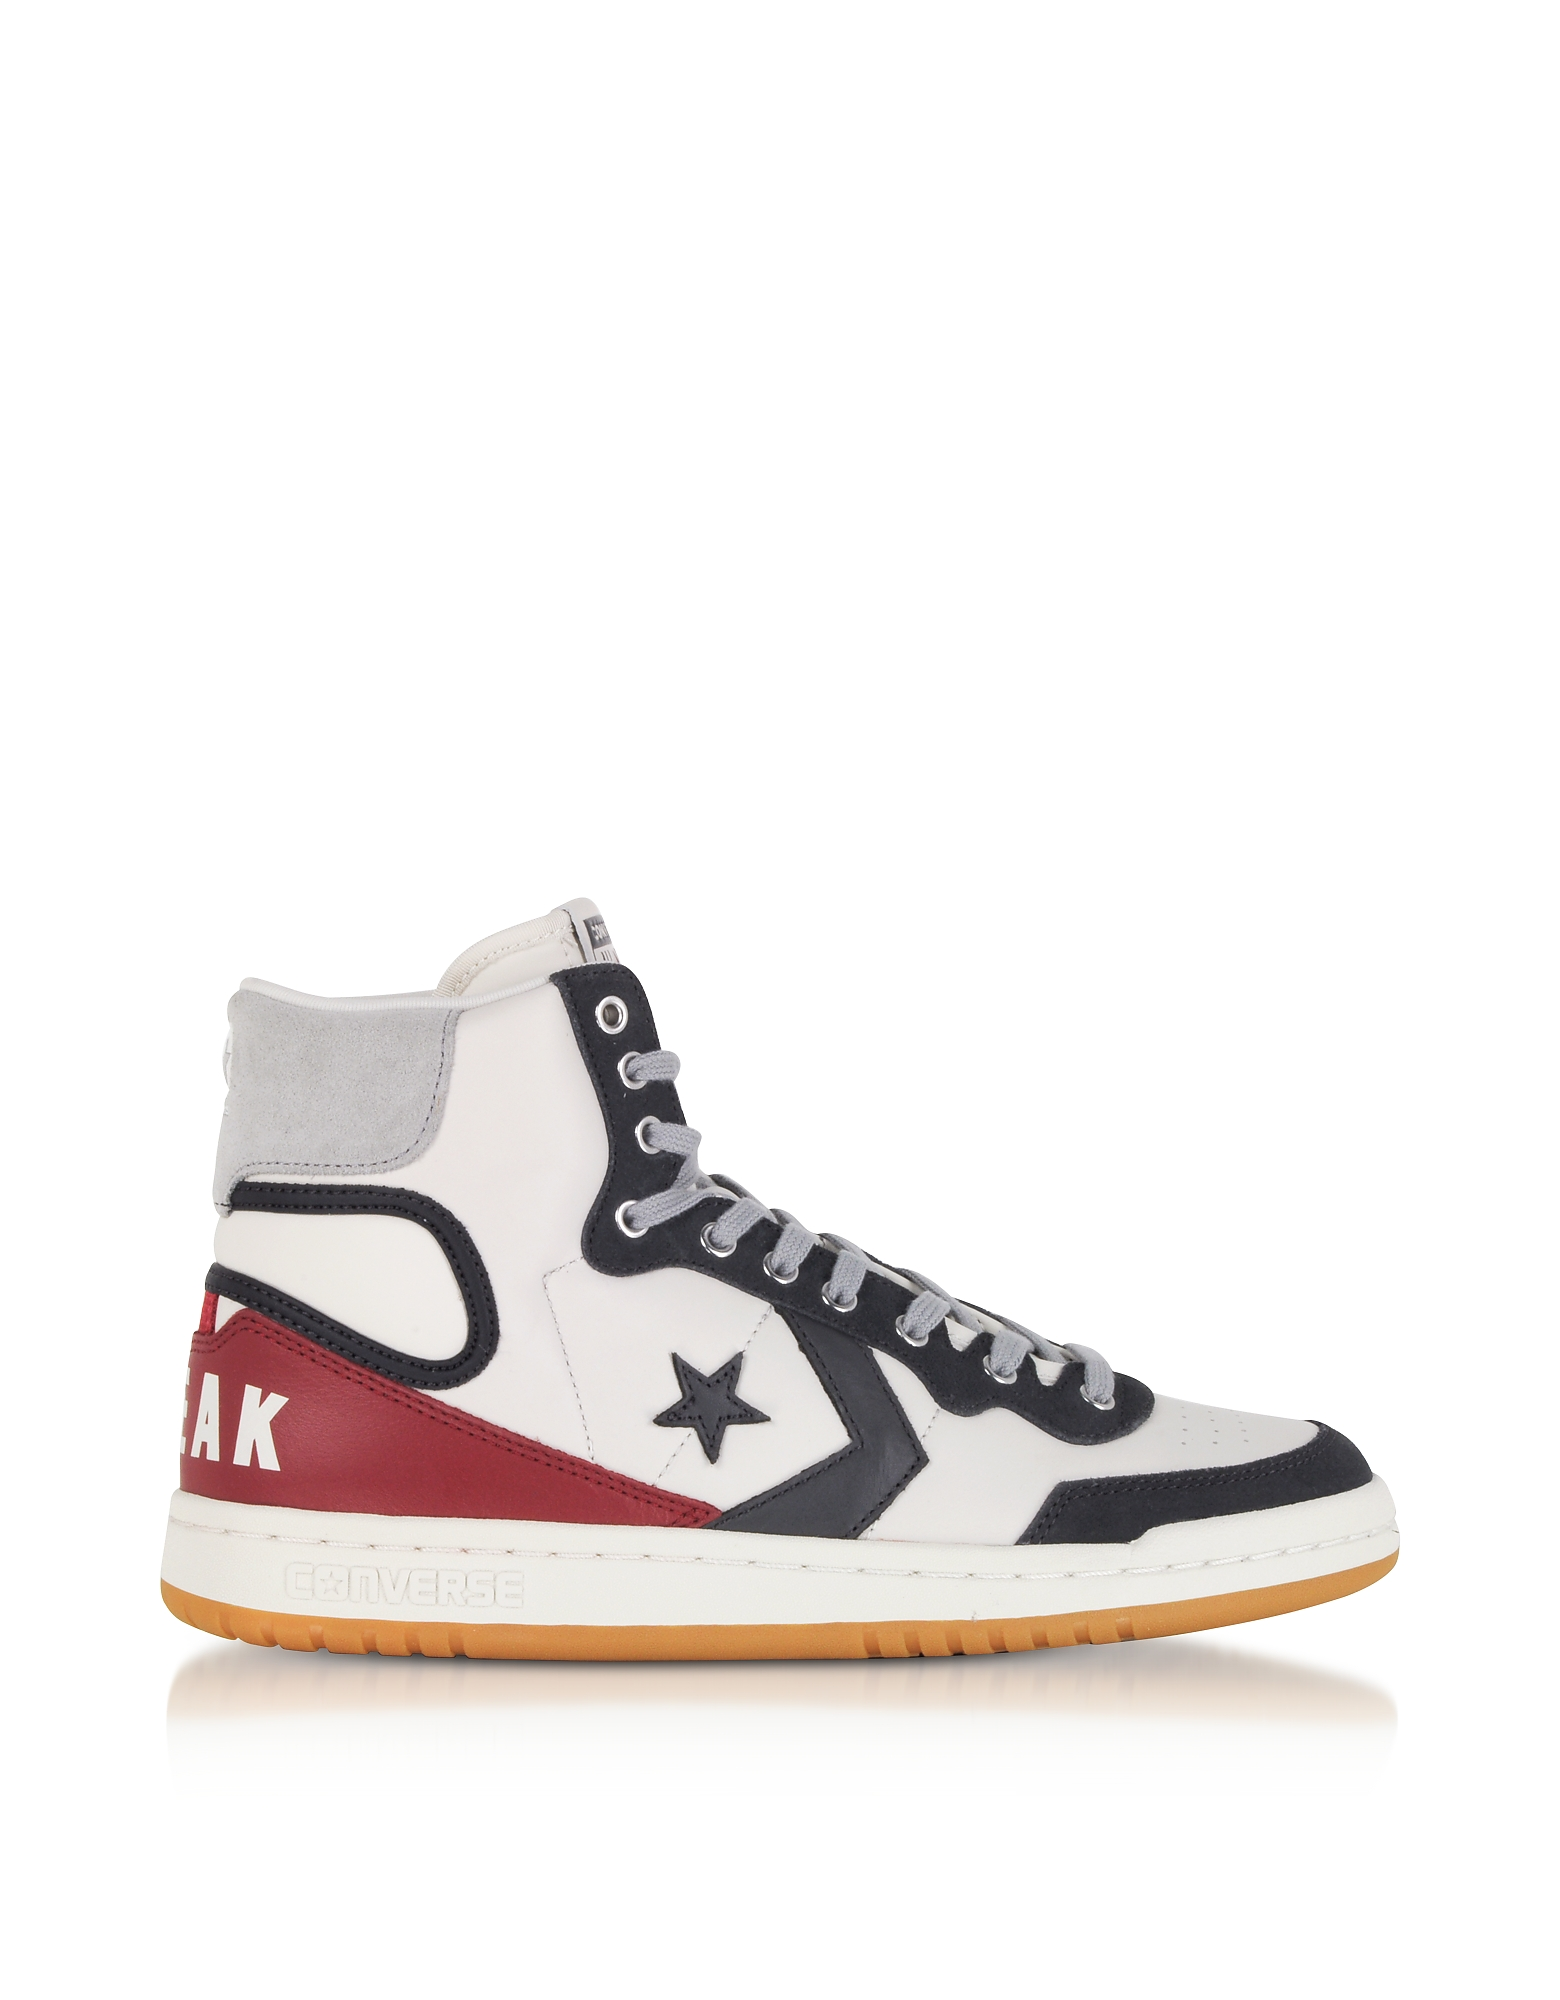 Converse Limited Edition Shoes, Fastbreak Hi Light Gray and Storm Wind Leather High Top Men's Sneake